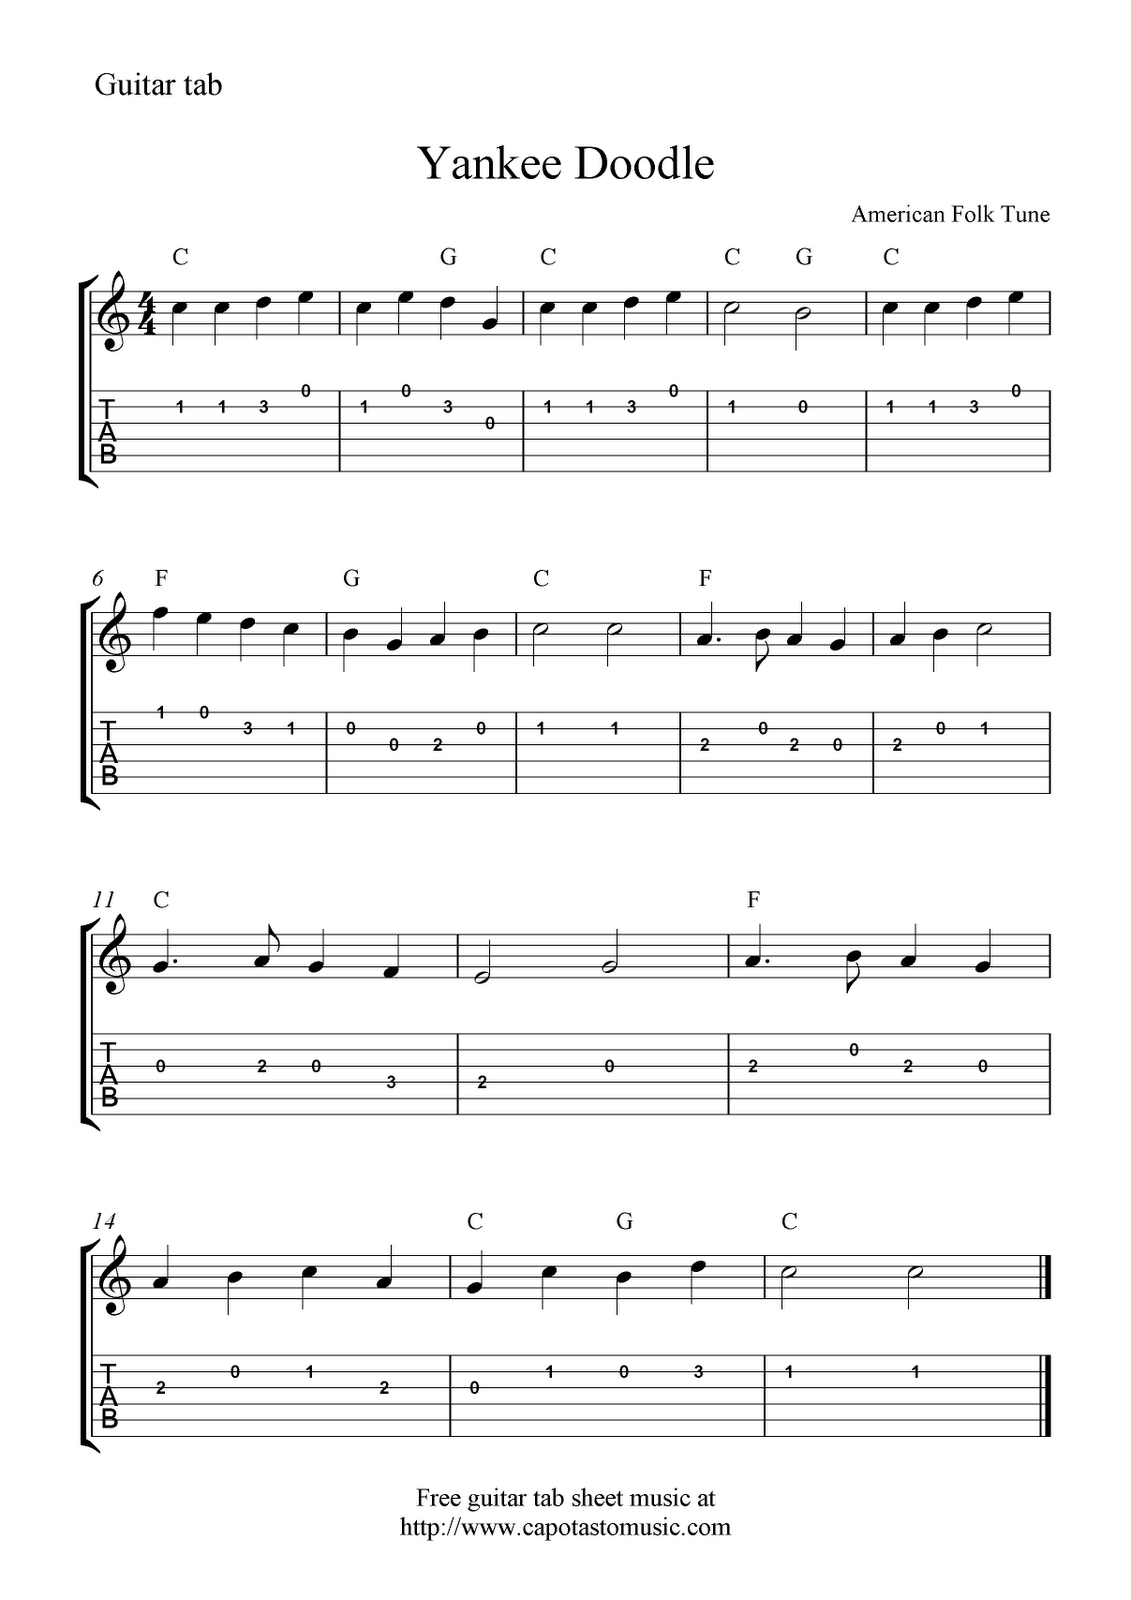 Guitar Easy Sheet Music Google Search Guitar Tabs Guitar Tabs Songs Guitar Sheet Music